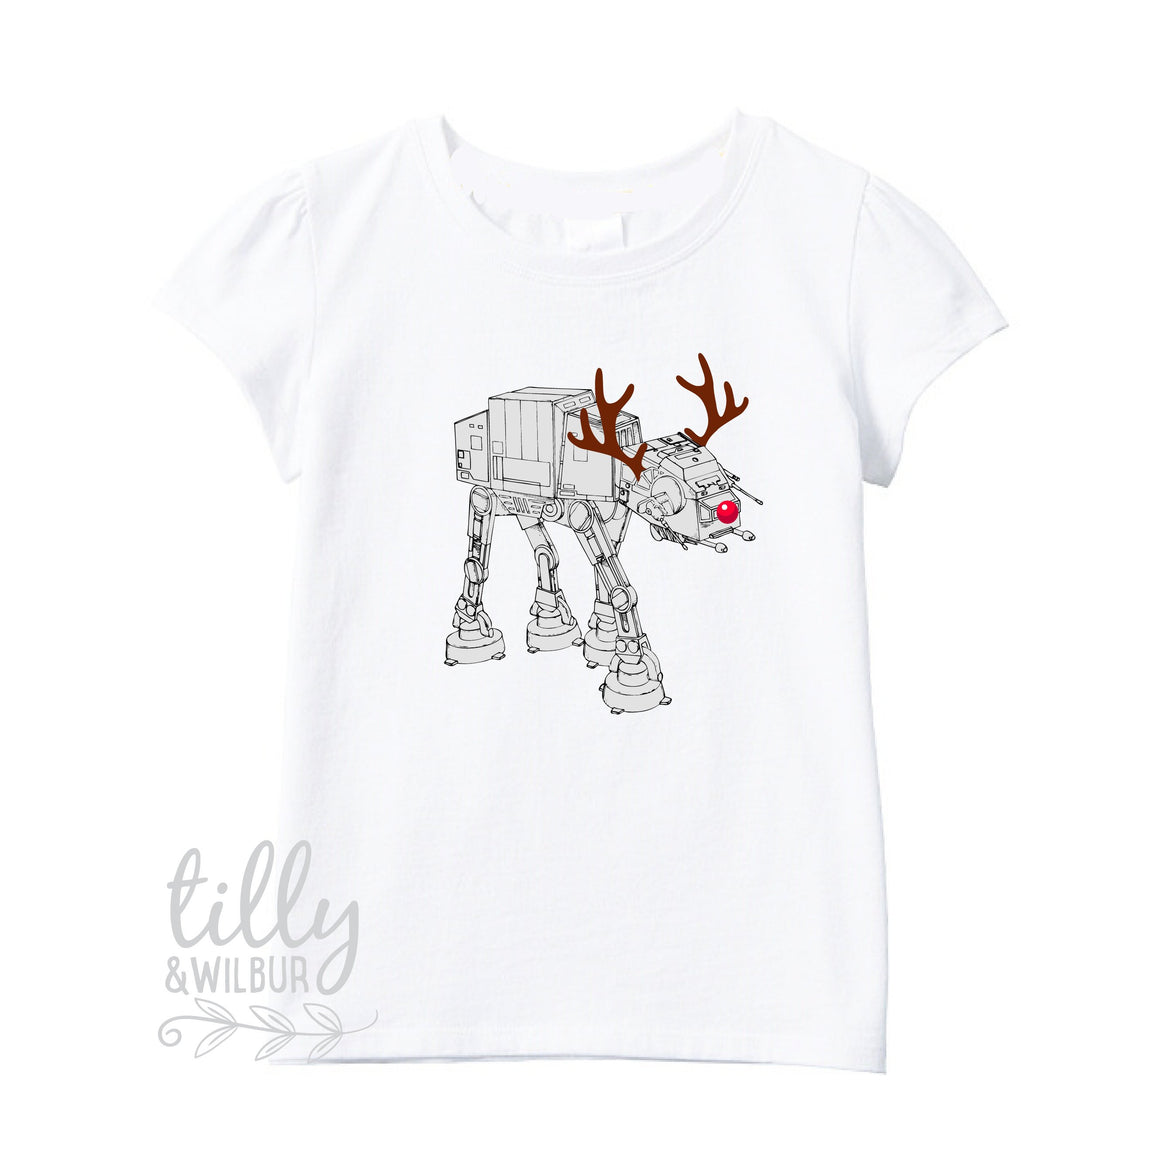 Star Wars AT-AT Walker Christmas Reindeer Girl's T-Shirt, Christmas at at walker, Girl's Xmas Gift, Christmas Walker, Star Wars Girl's Gift